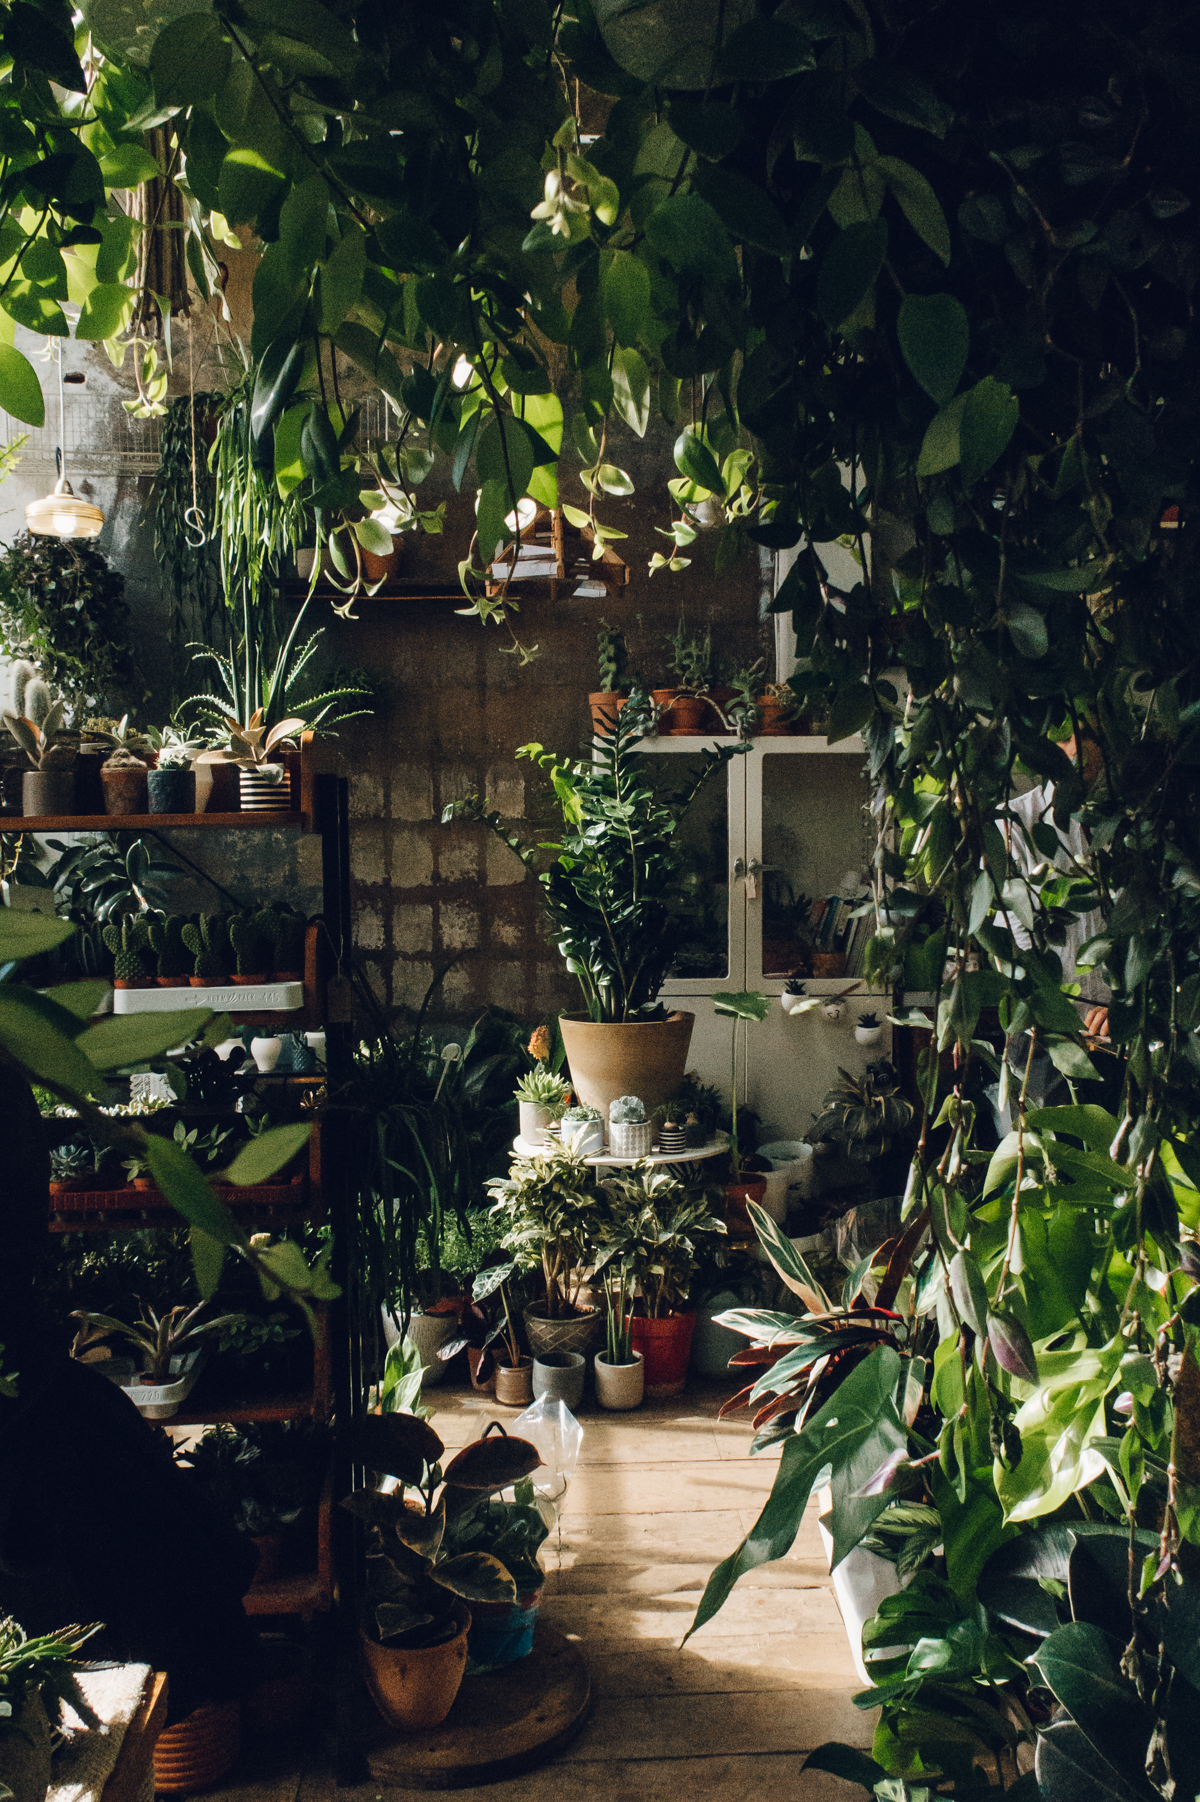 The indoor jungle at Conservatory Archives in London